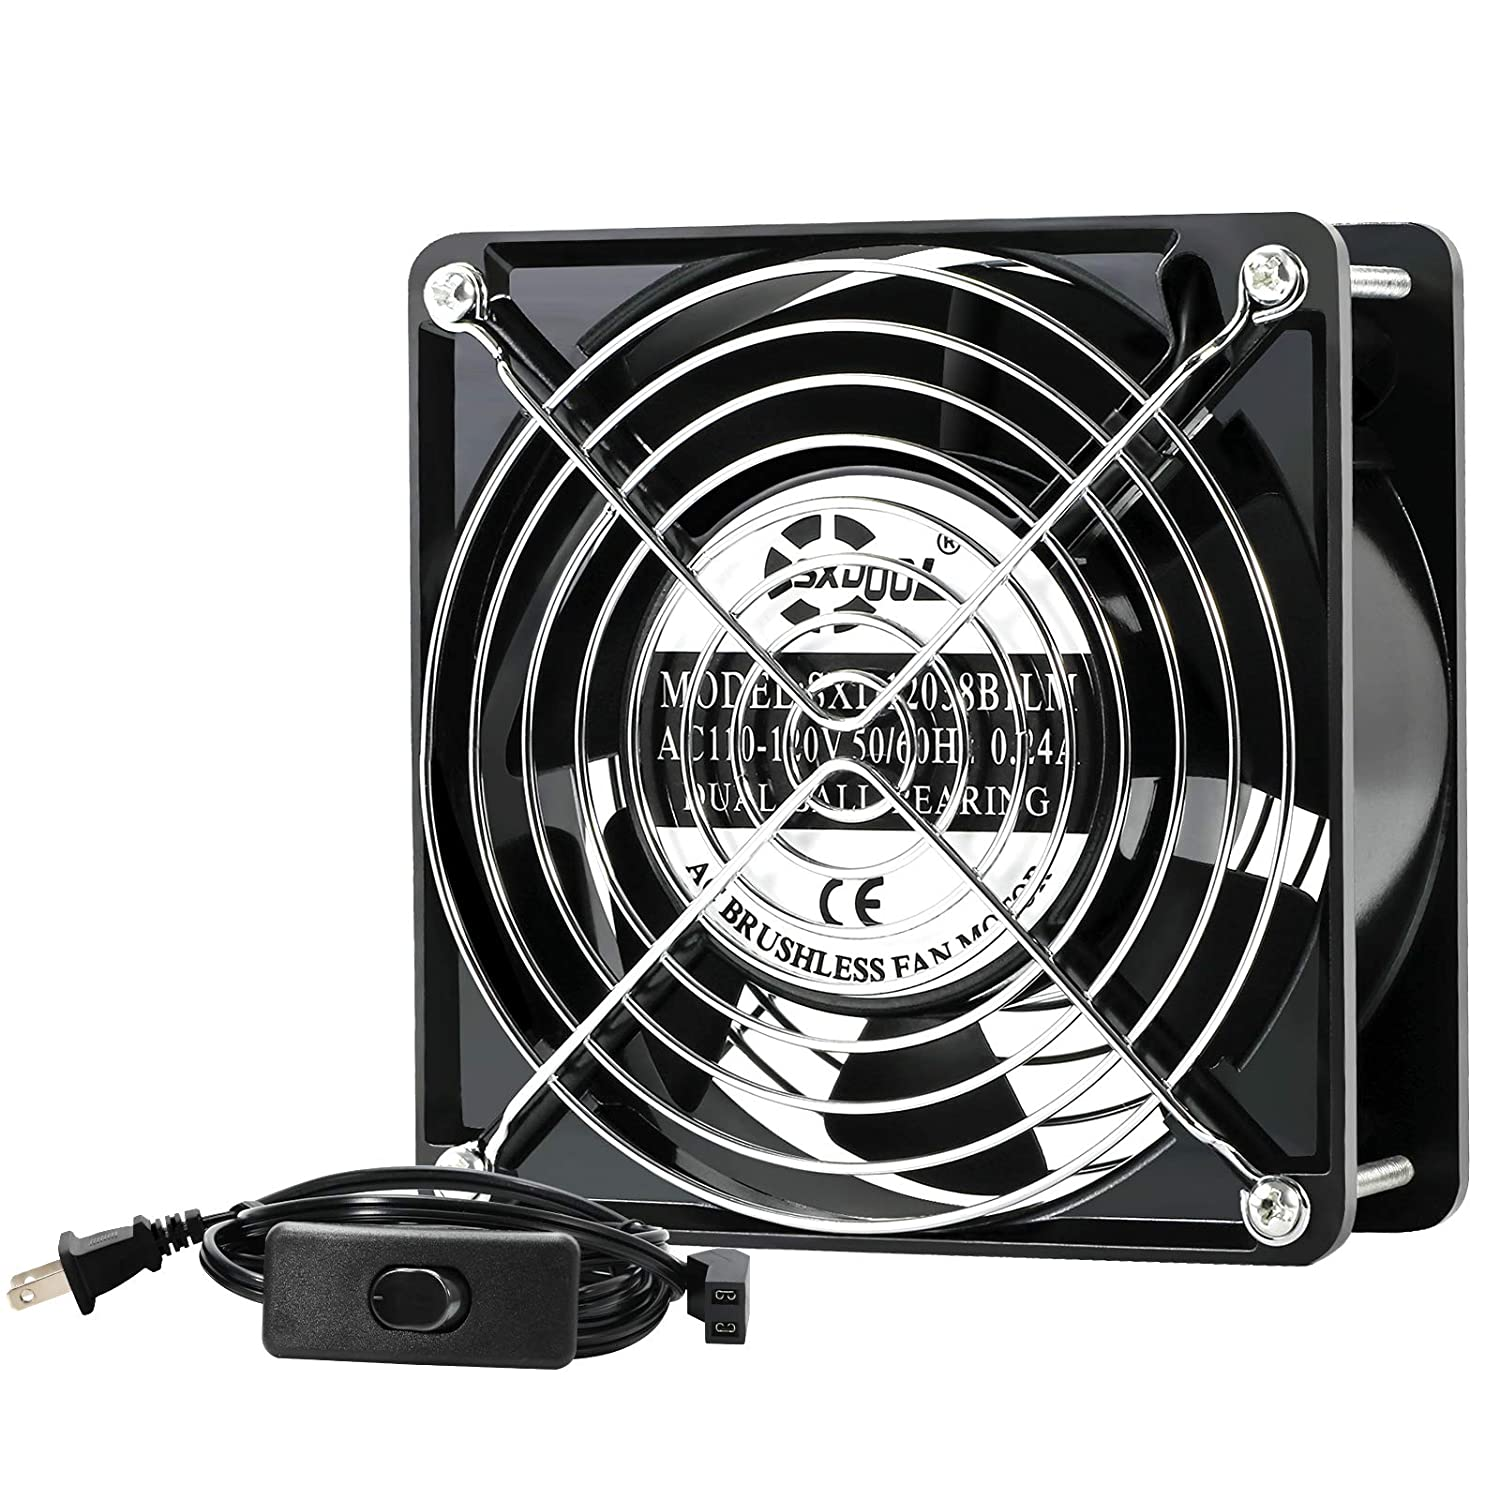 SXDOOL AXIAL Cooling Fan 12cm, AC 115V 120V 120mm x 38mm High Speed CFM with Switch Power Cord, for DIY Ventilation Exhaust Projects